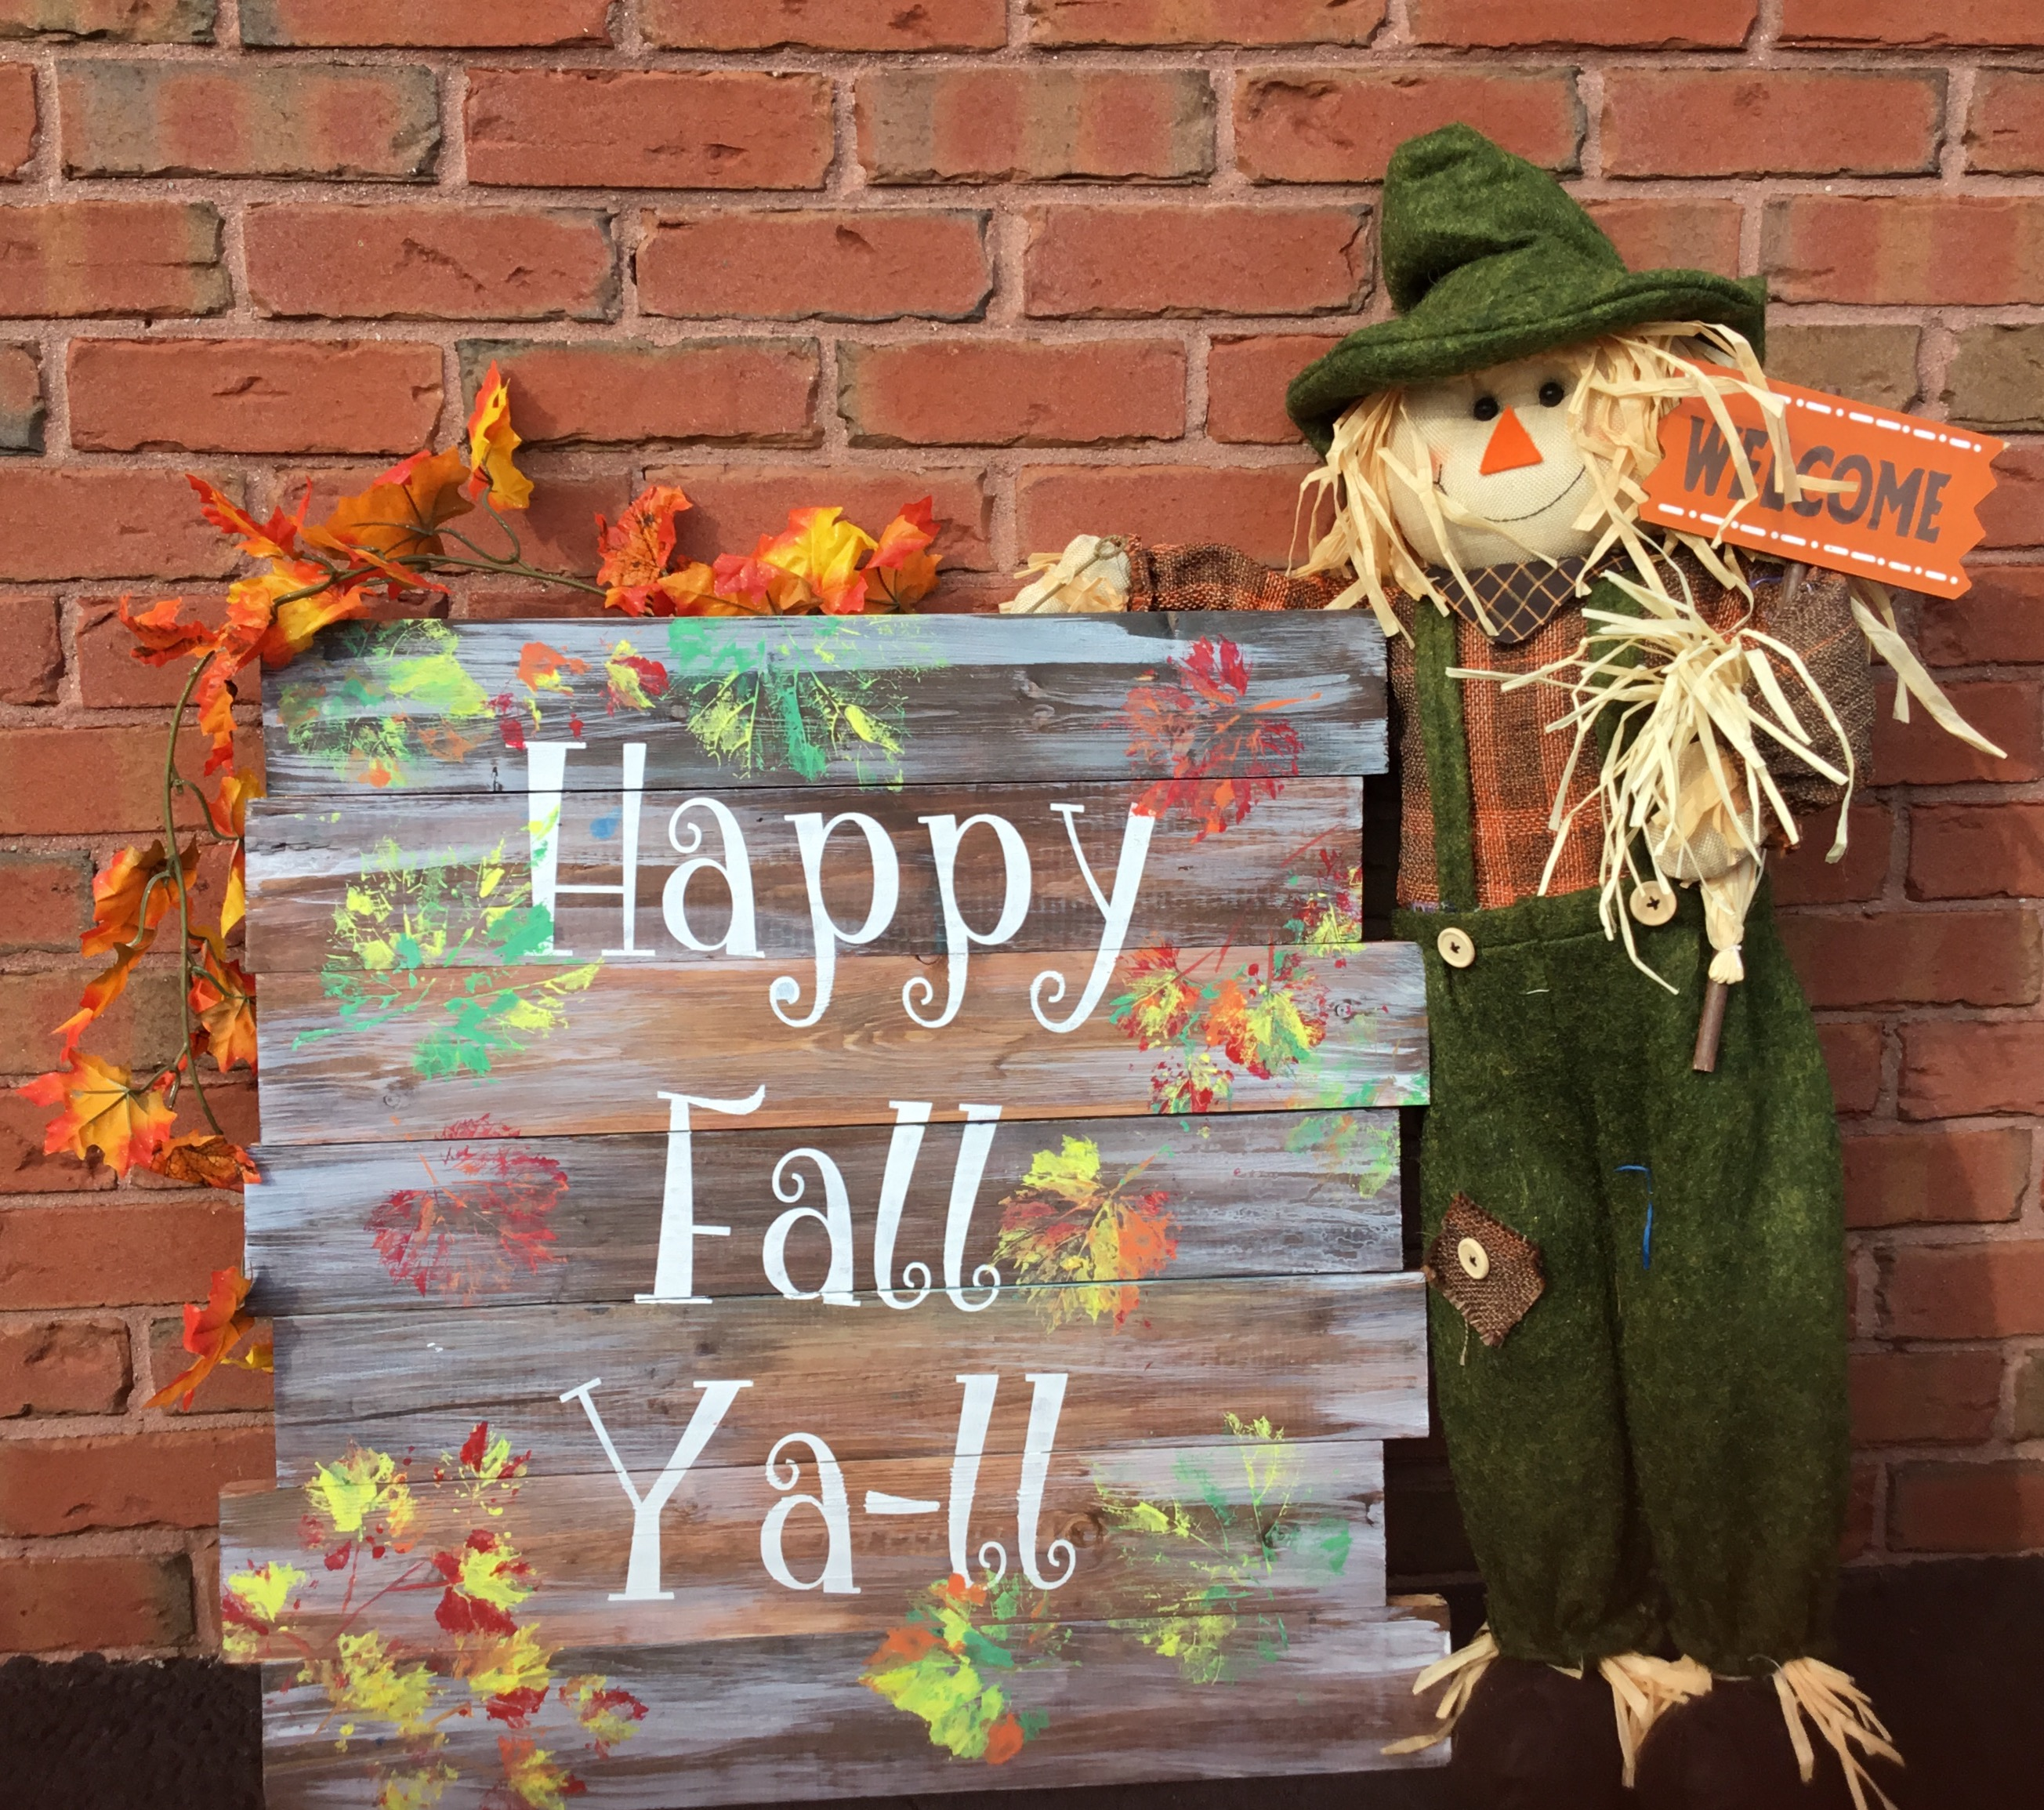 Happy Fall Ya-ll!